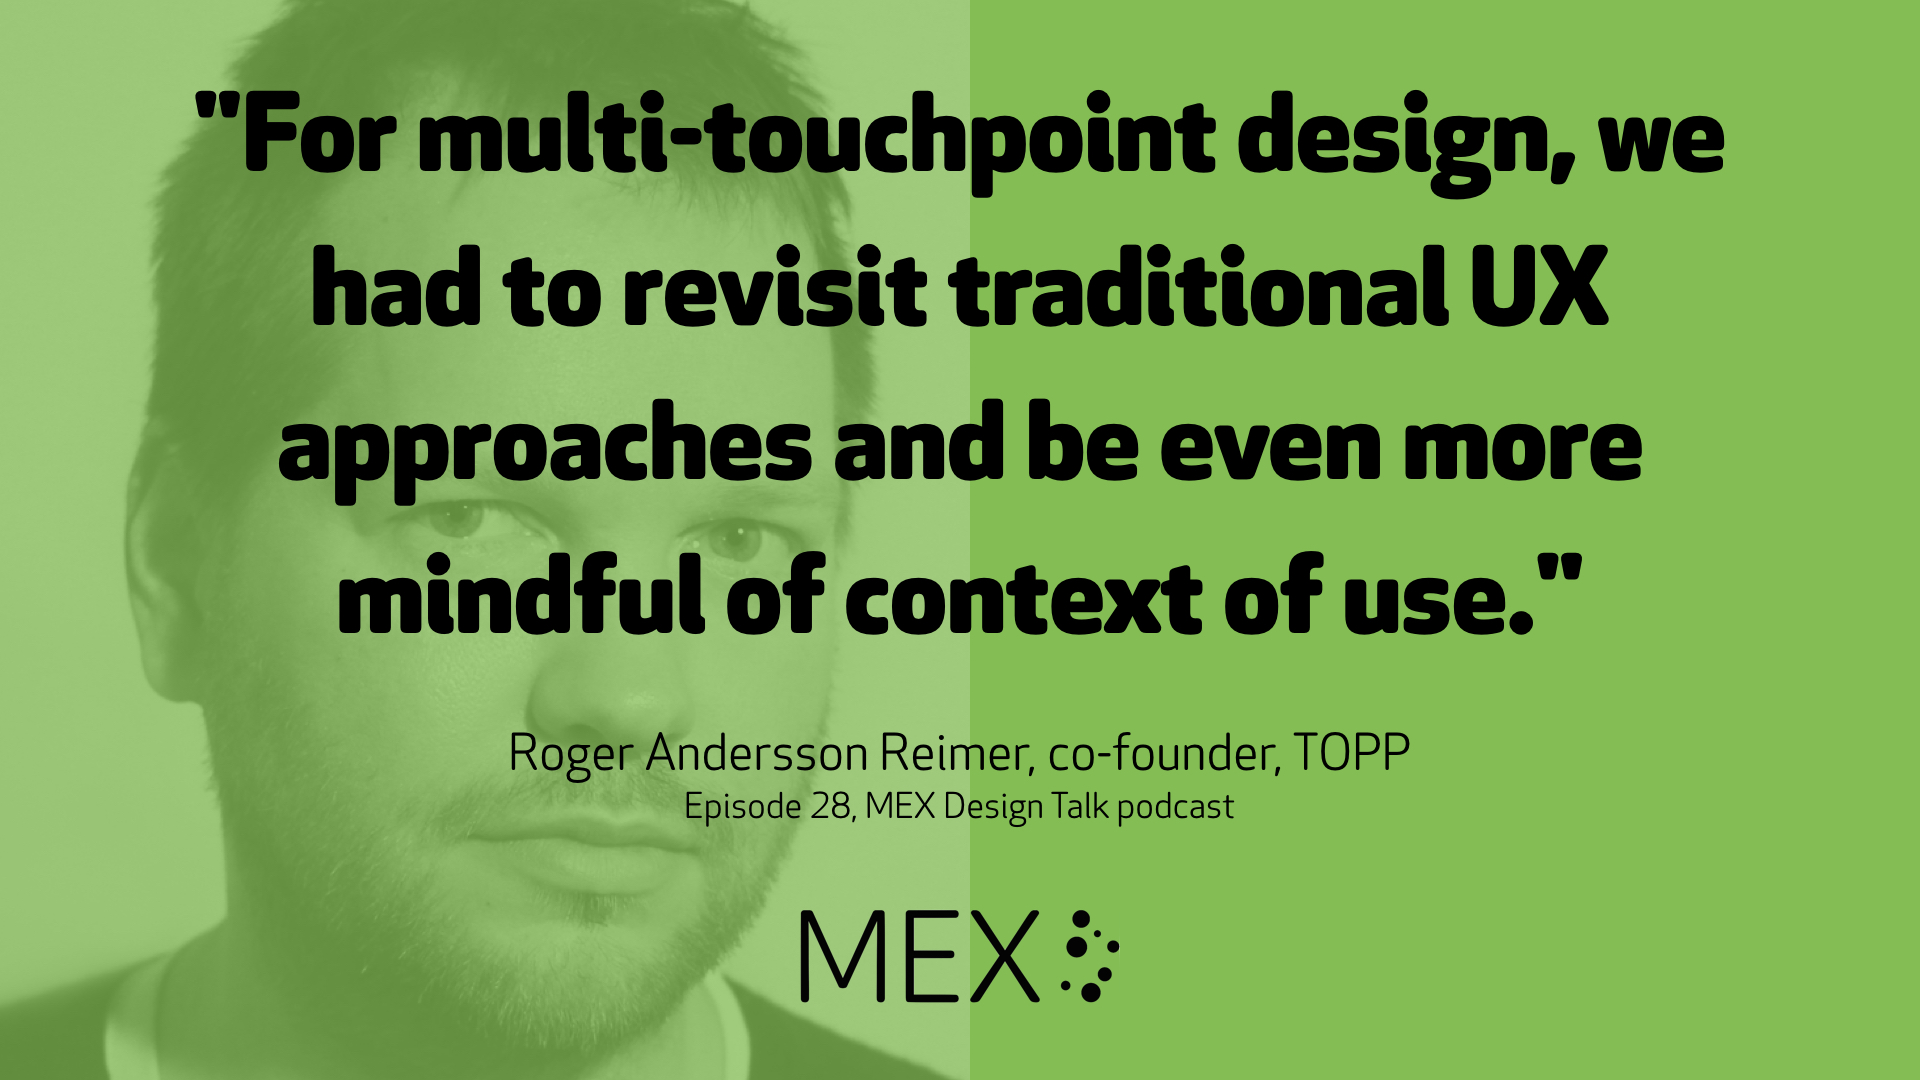 """For multi-touchpoint design, we had to revisit traditional UX approaches and be even more mindful of context of use."" Roger Andersson Reimer, co-founder, TOPP Episode 28, MEX Design Talk podcast"